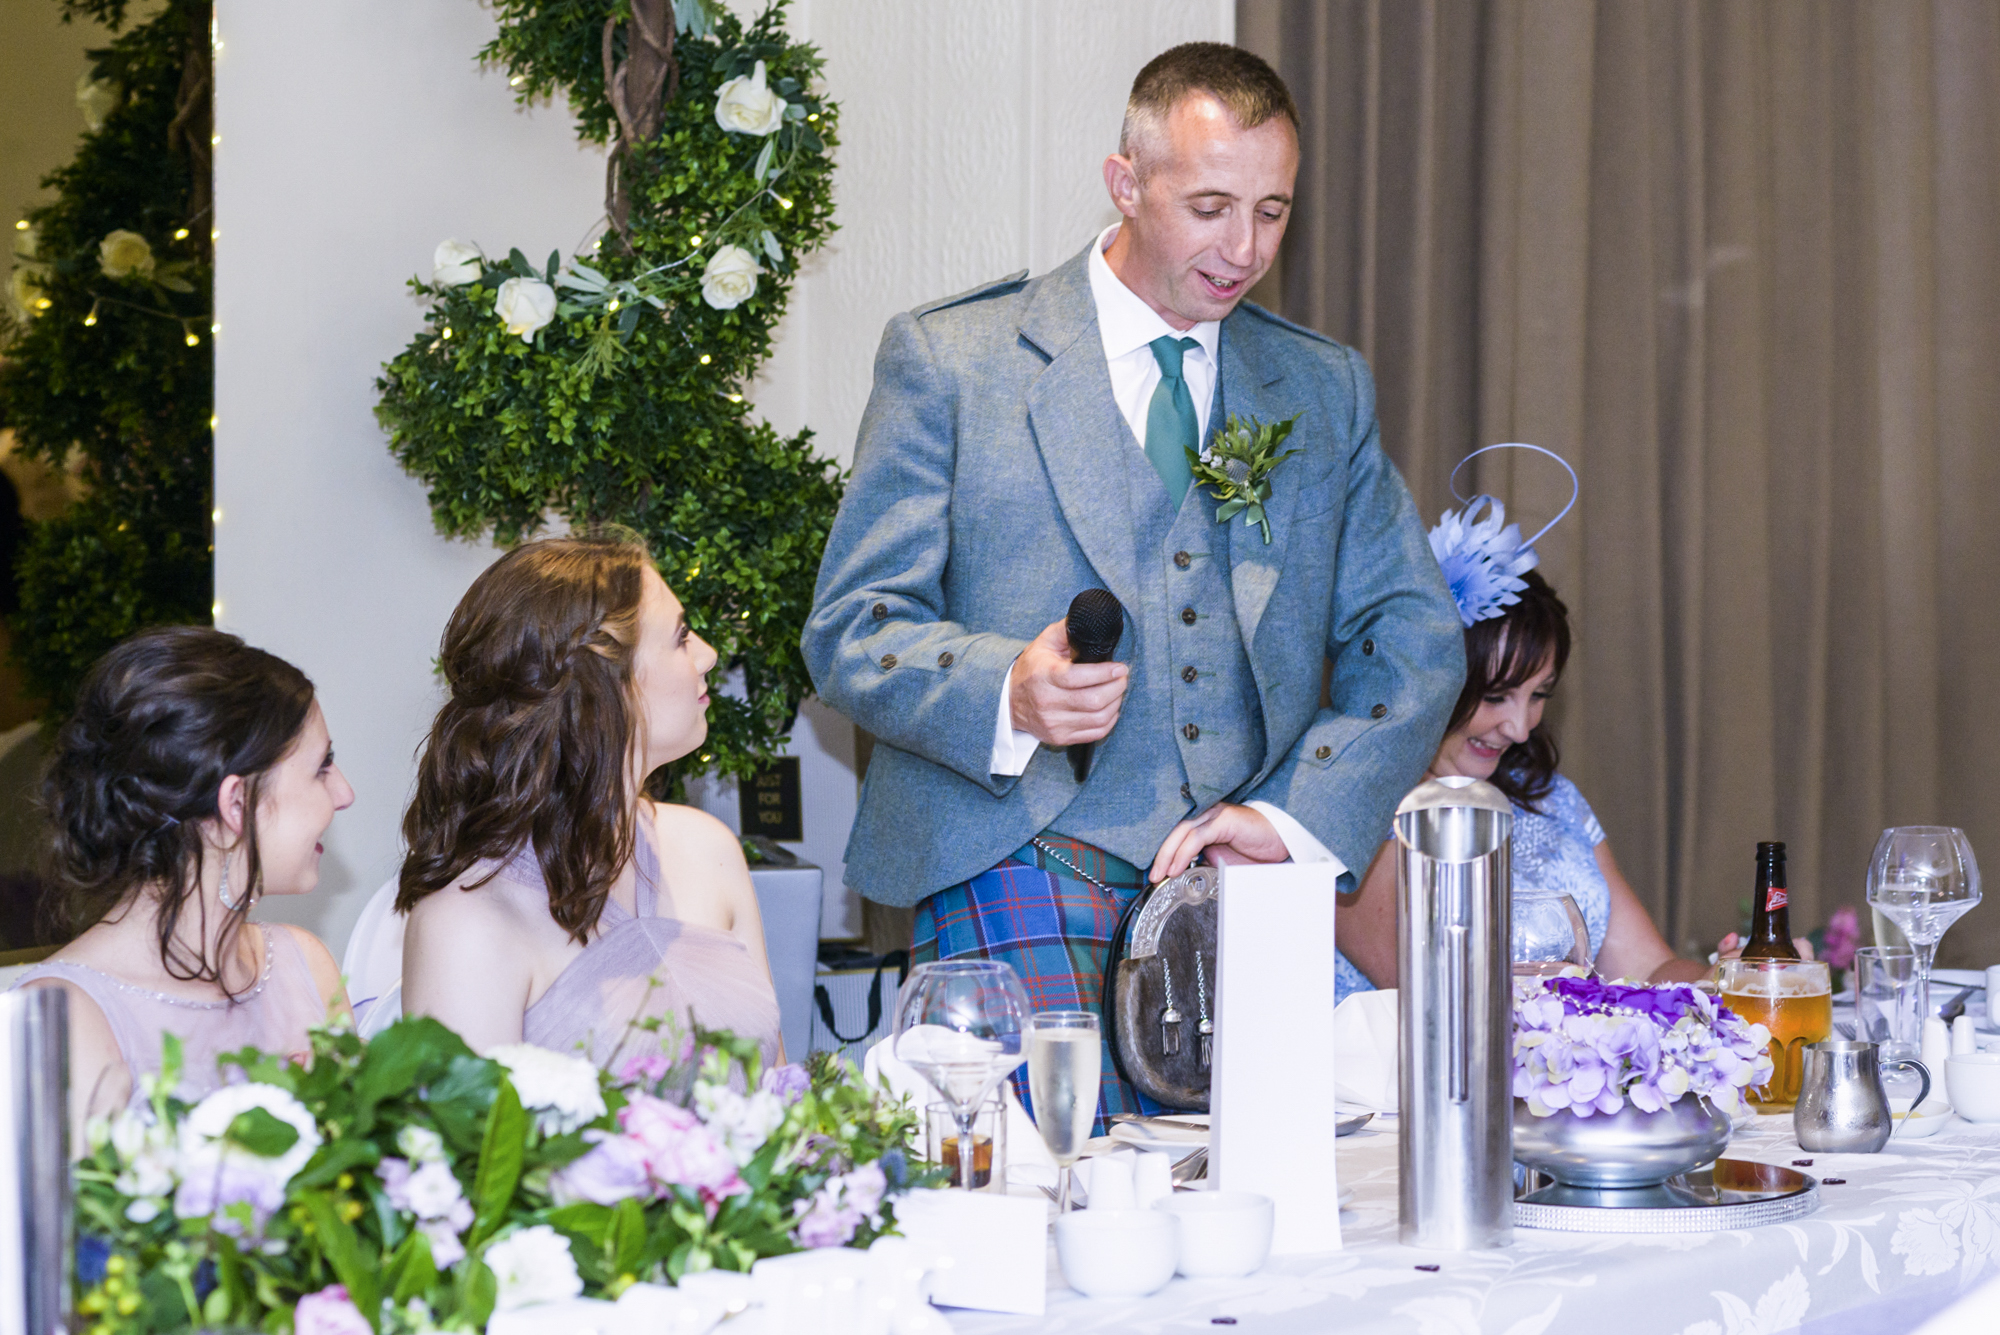 Wedding Photographer in Edinburgh Highlands Scotland - Ewan Mathers